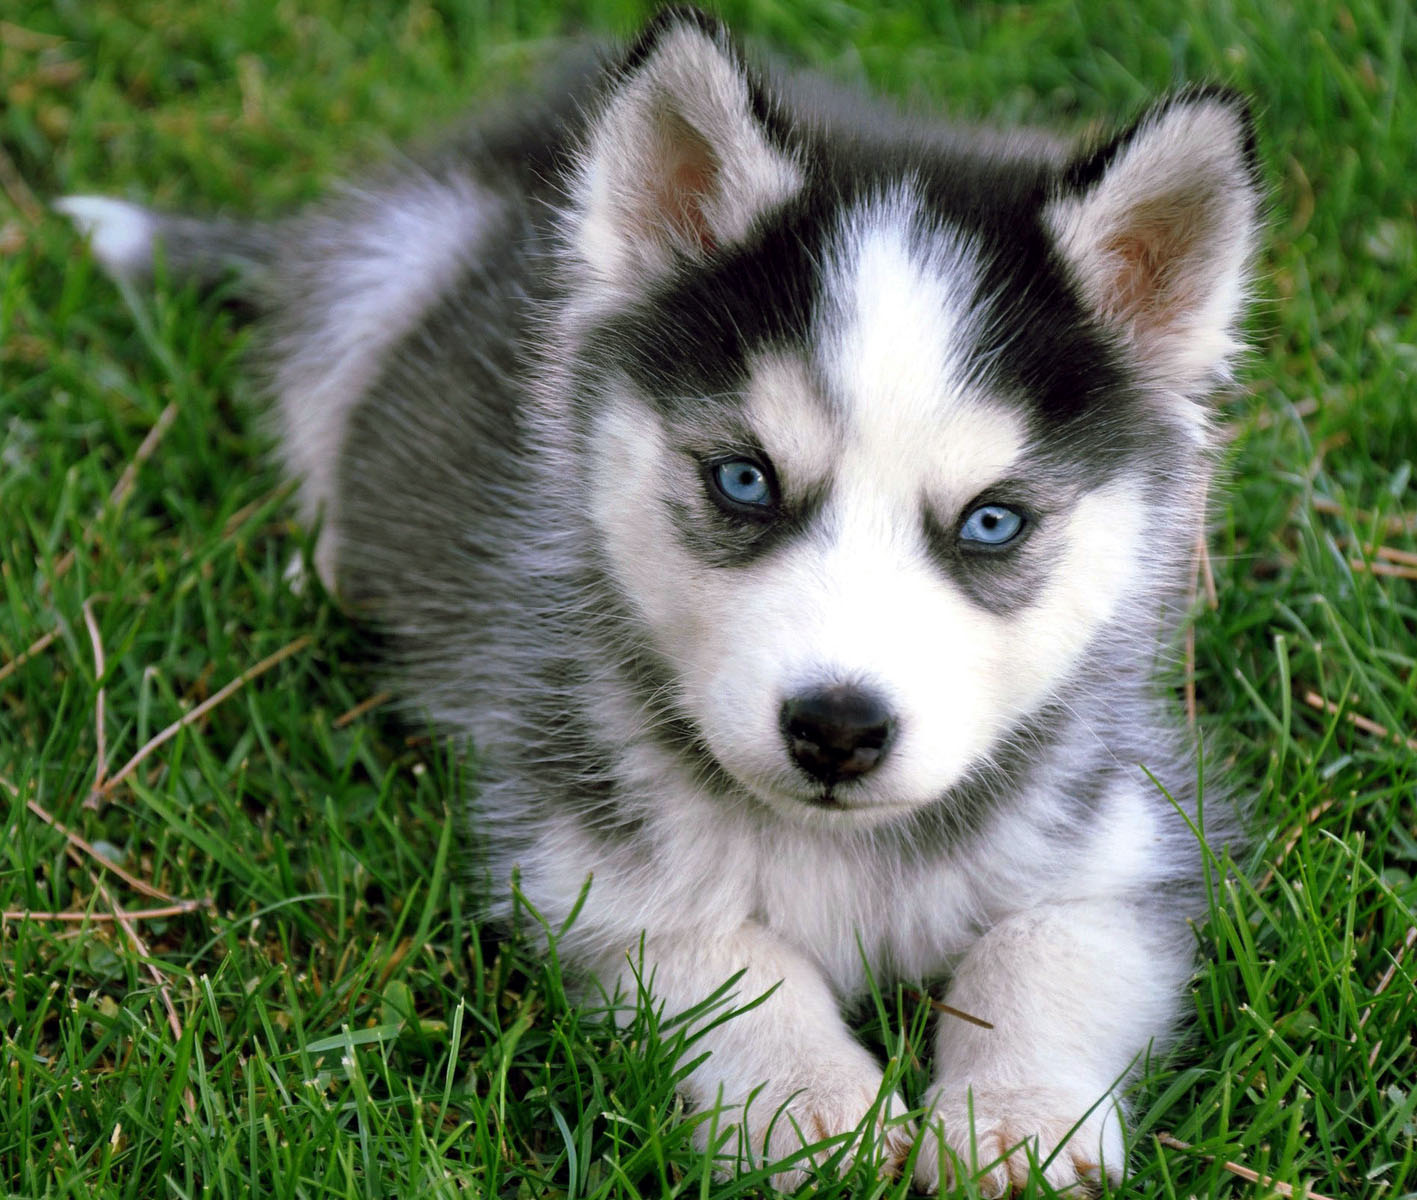 Siberian Husky Puppy for Sale | Dogs & Puppies | Gumtree